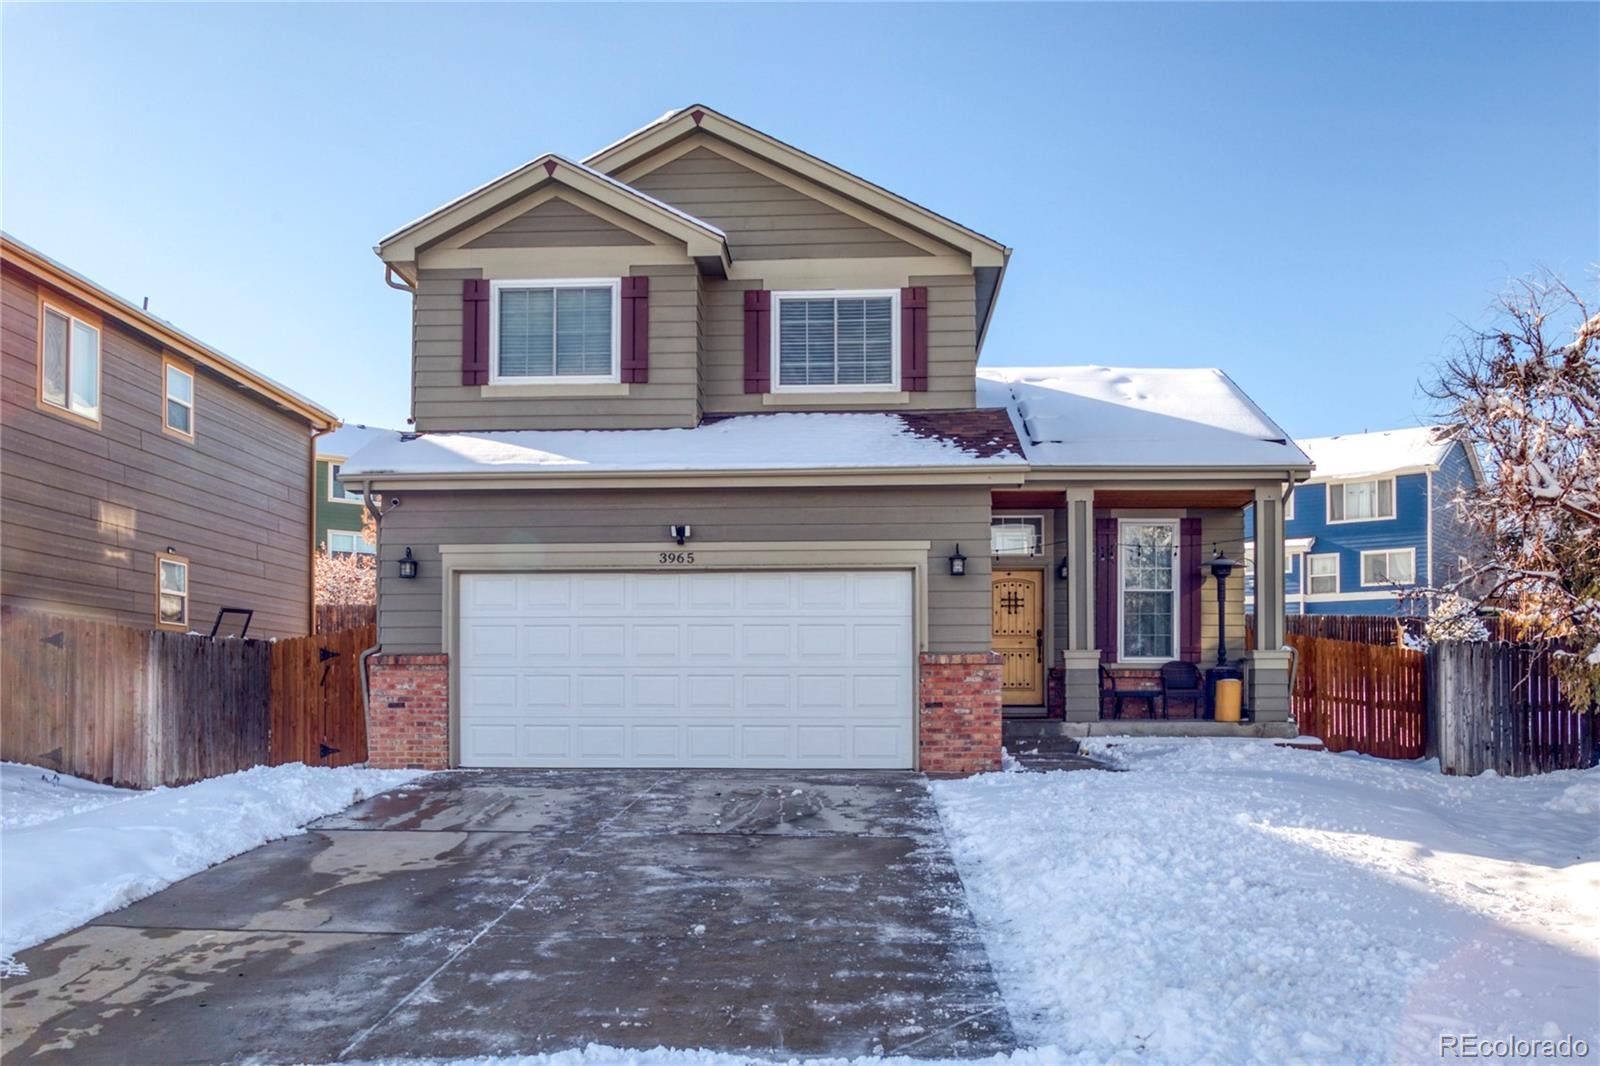 Photo of 3965 S Shawnee Street, Aurora, CO 80018